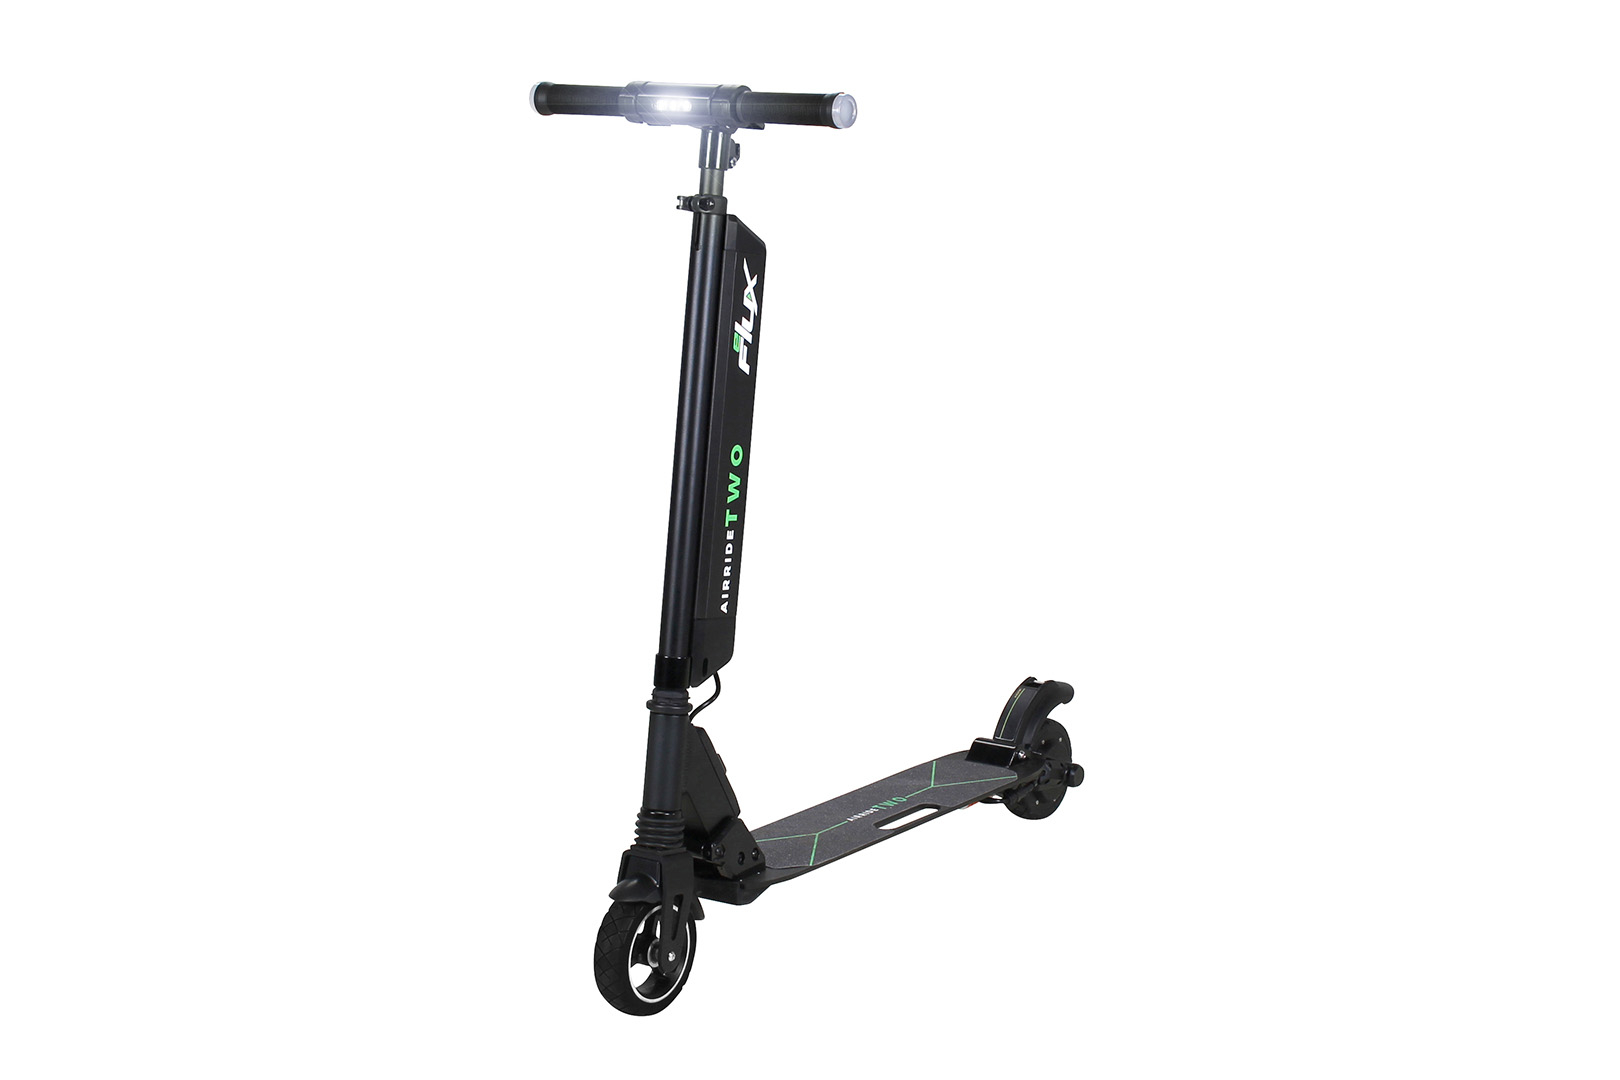 100509 airride ii mini e scooter faltbar 300w led. Black Bedroom Furniture Sets. Home Design Ideas